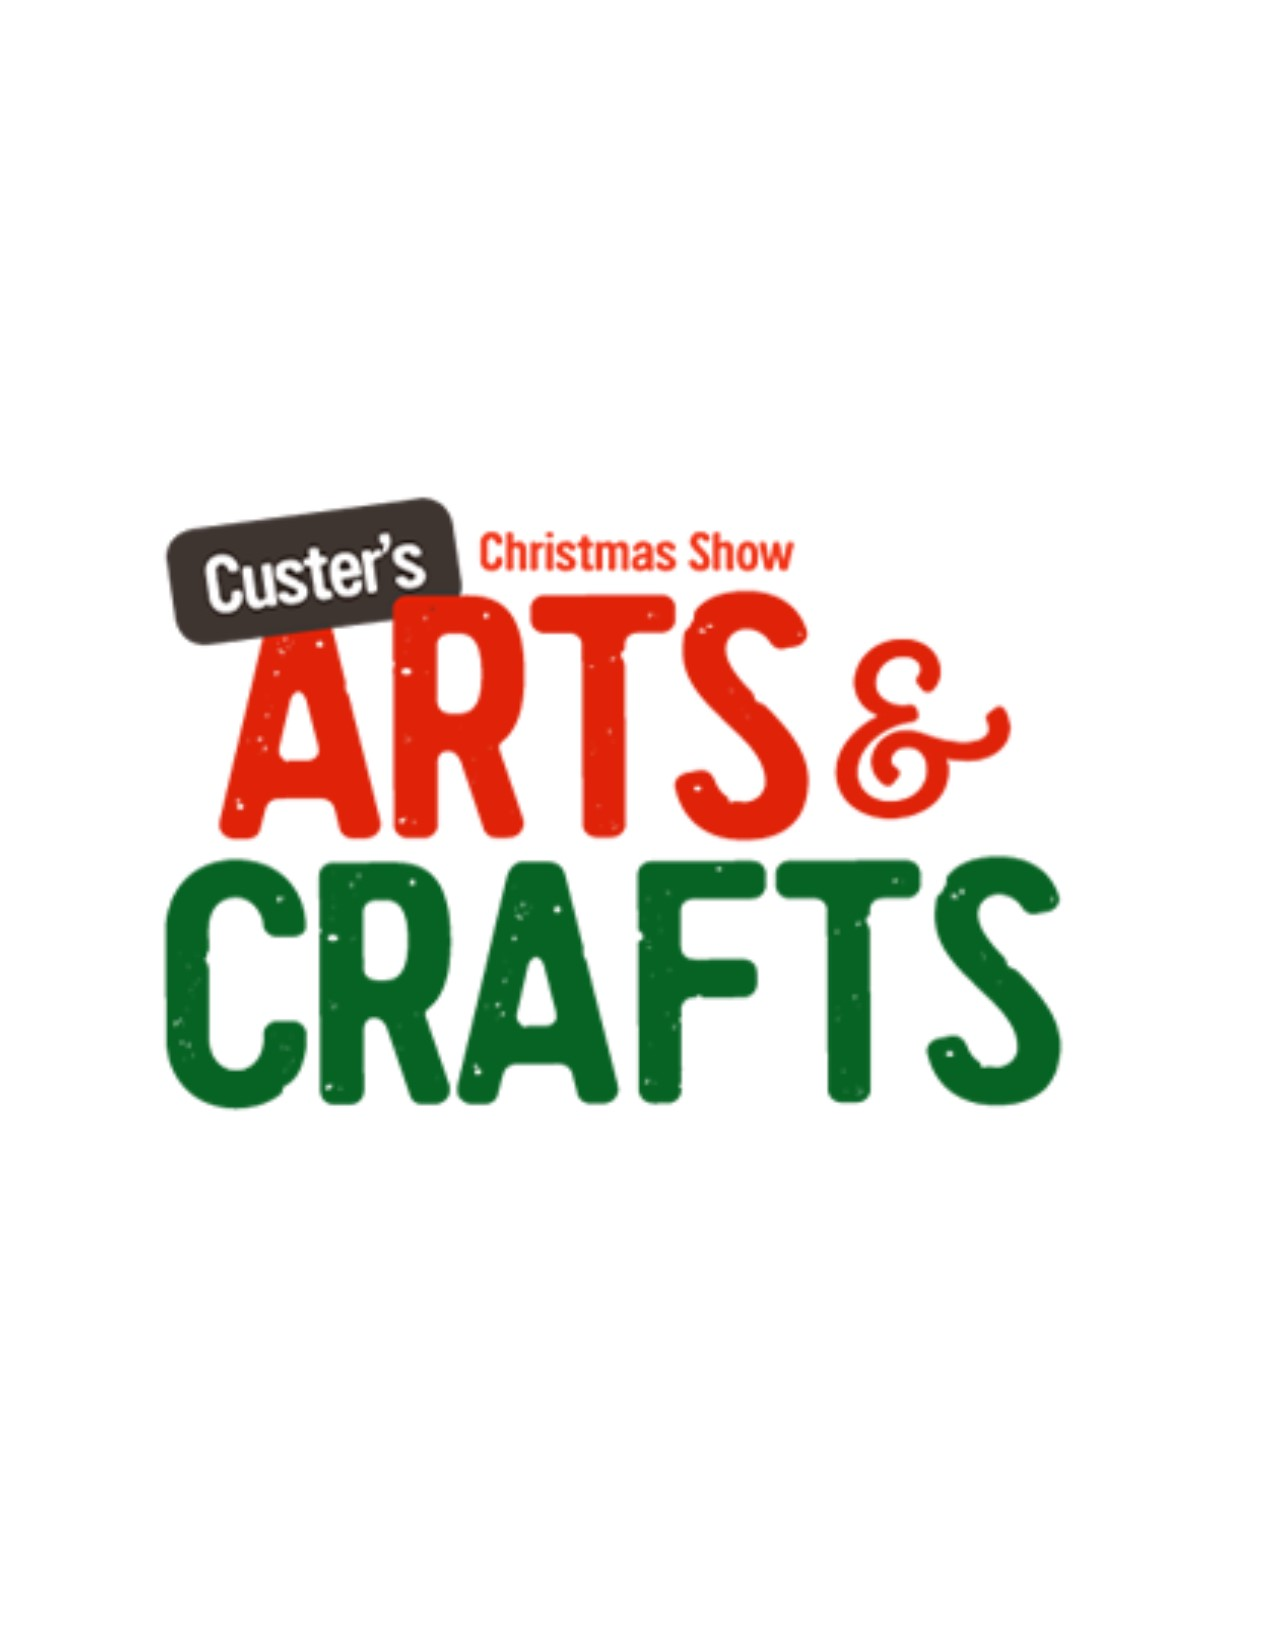 Custer's Christmas Arts & Crafts Show